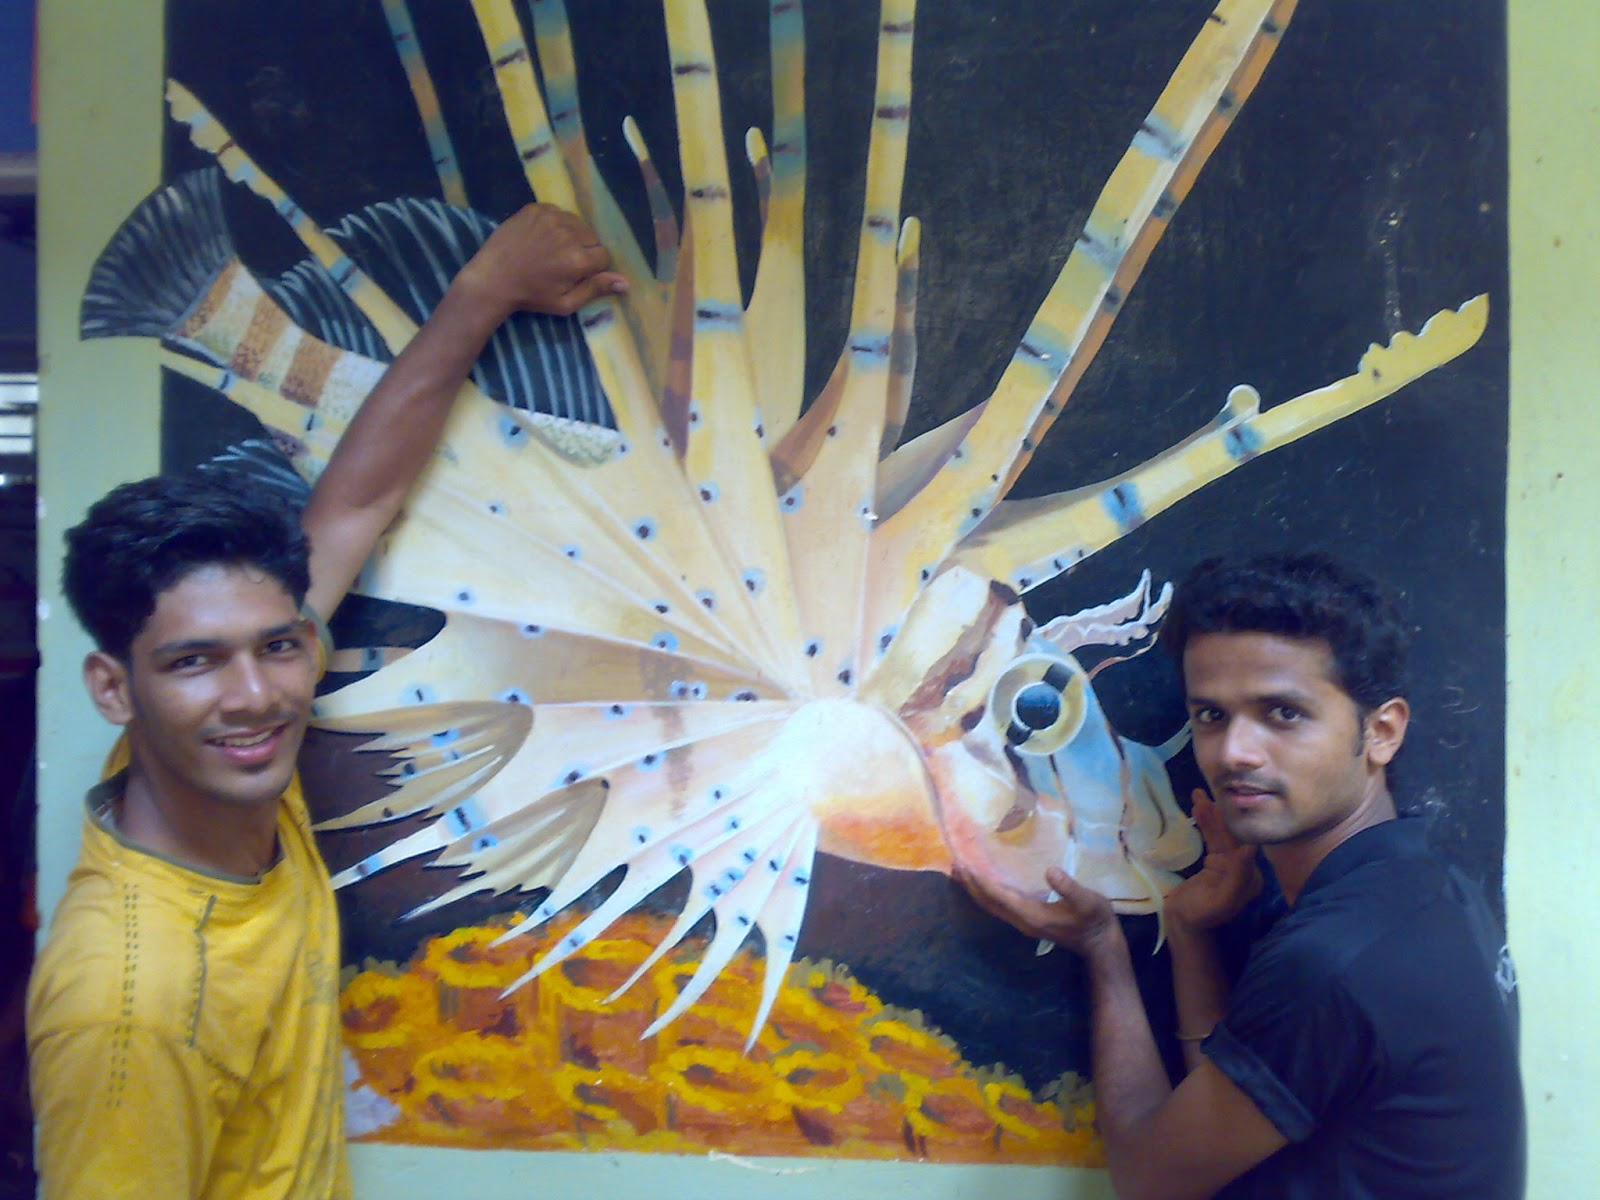 Fish aquarium in kurla -  Aquarium They Put Giant Show Piece Of Real Ship Varsha Which Attracts Each Visitor Also In Each Wall Of Aquarium They Painted Different Fish Photos